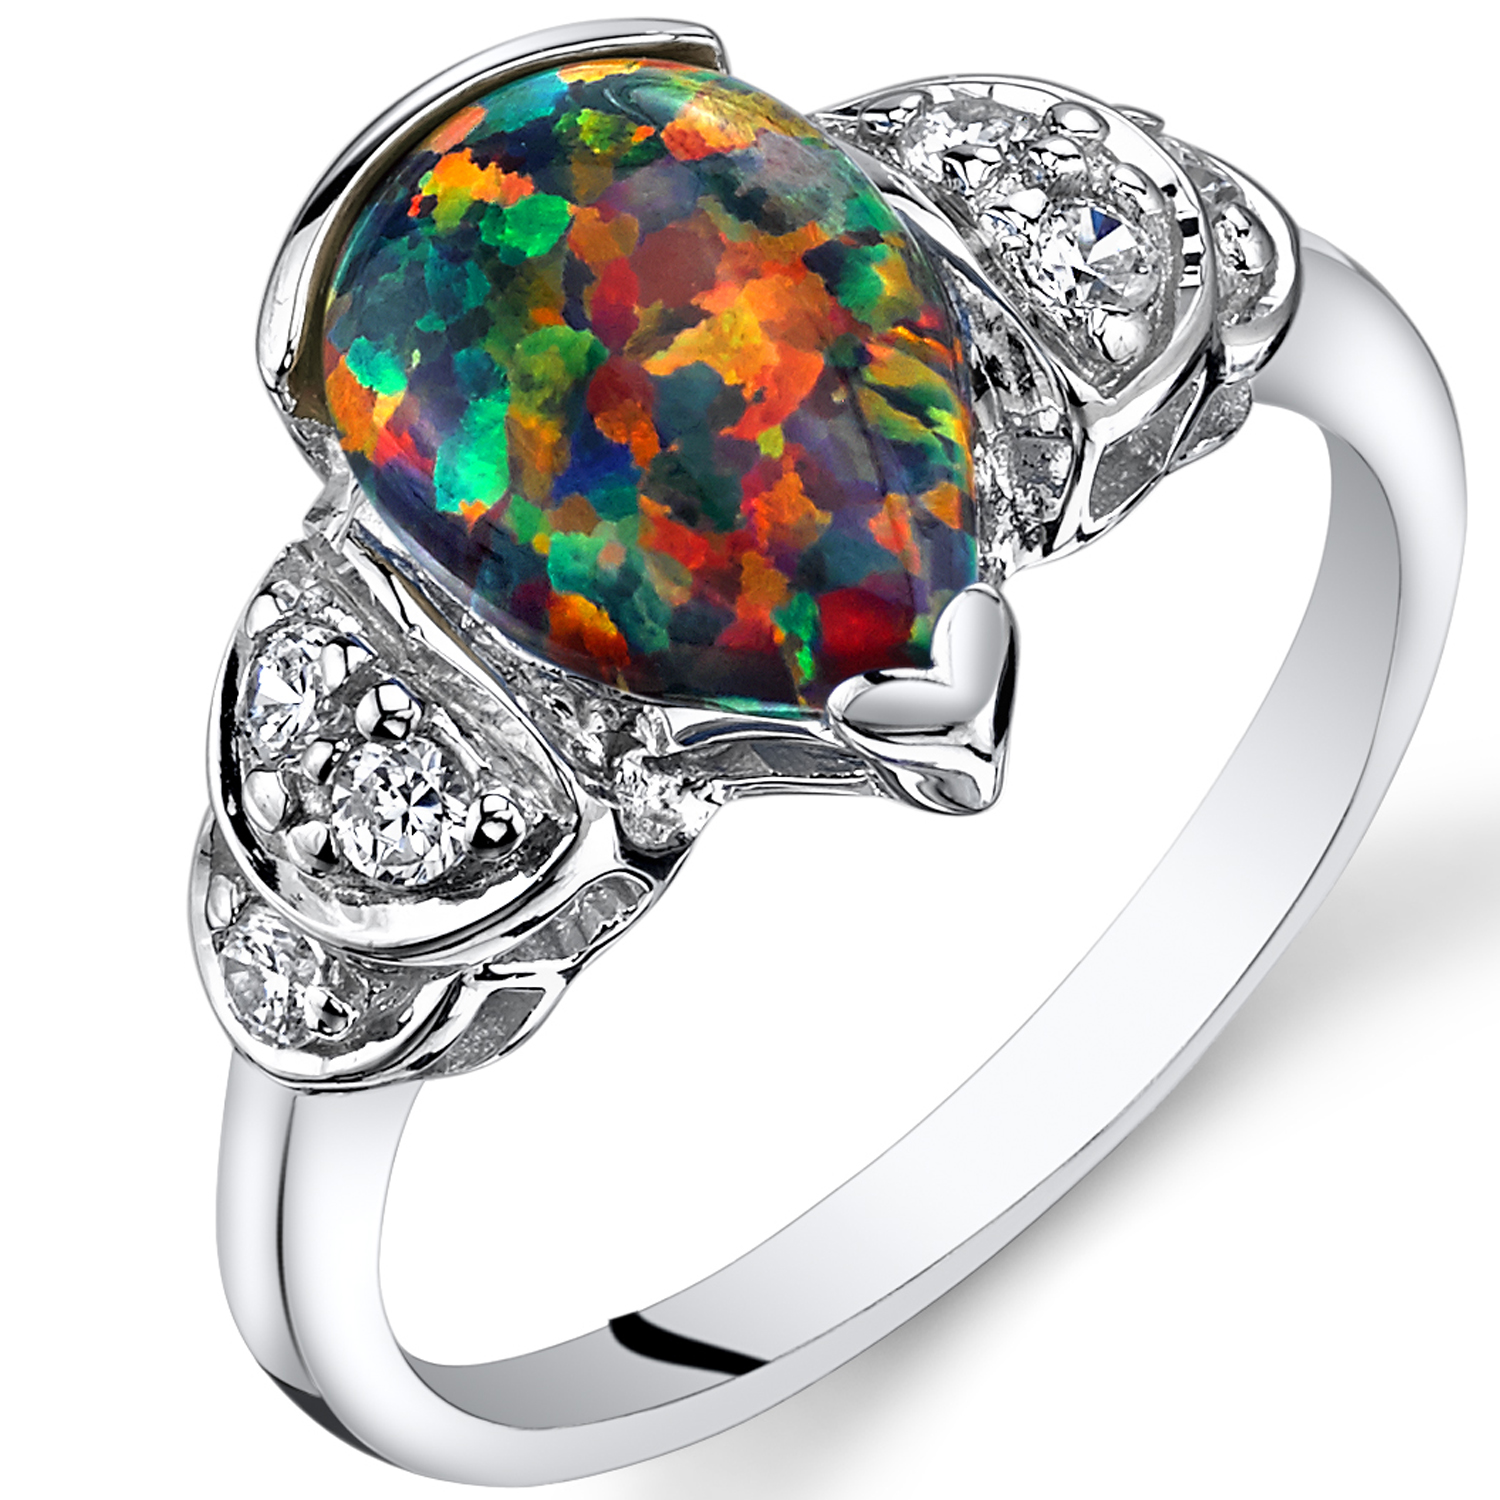 Created Opal Engagement Ring Sterling Silver 1.25 Carats Sizes 5 to 9